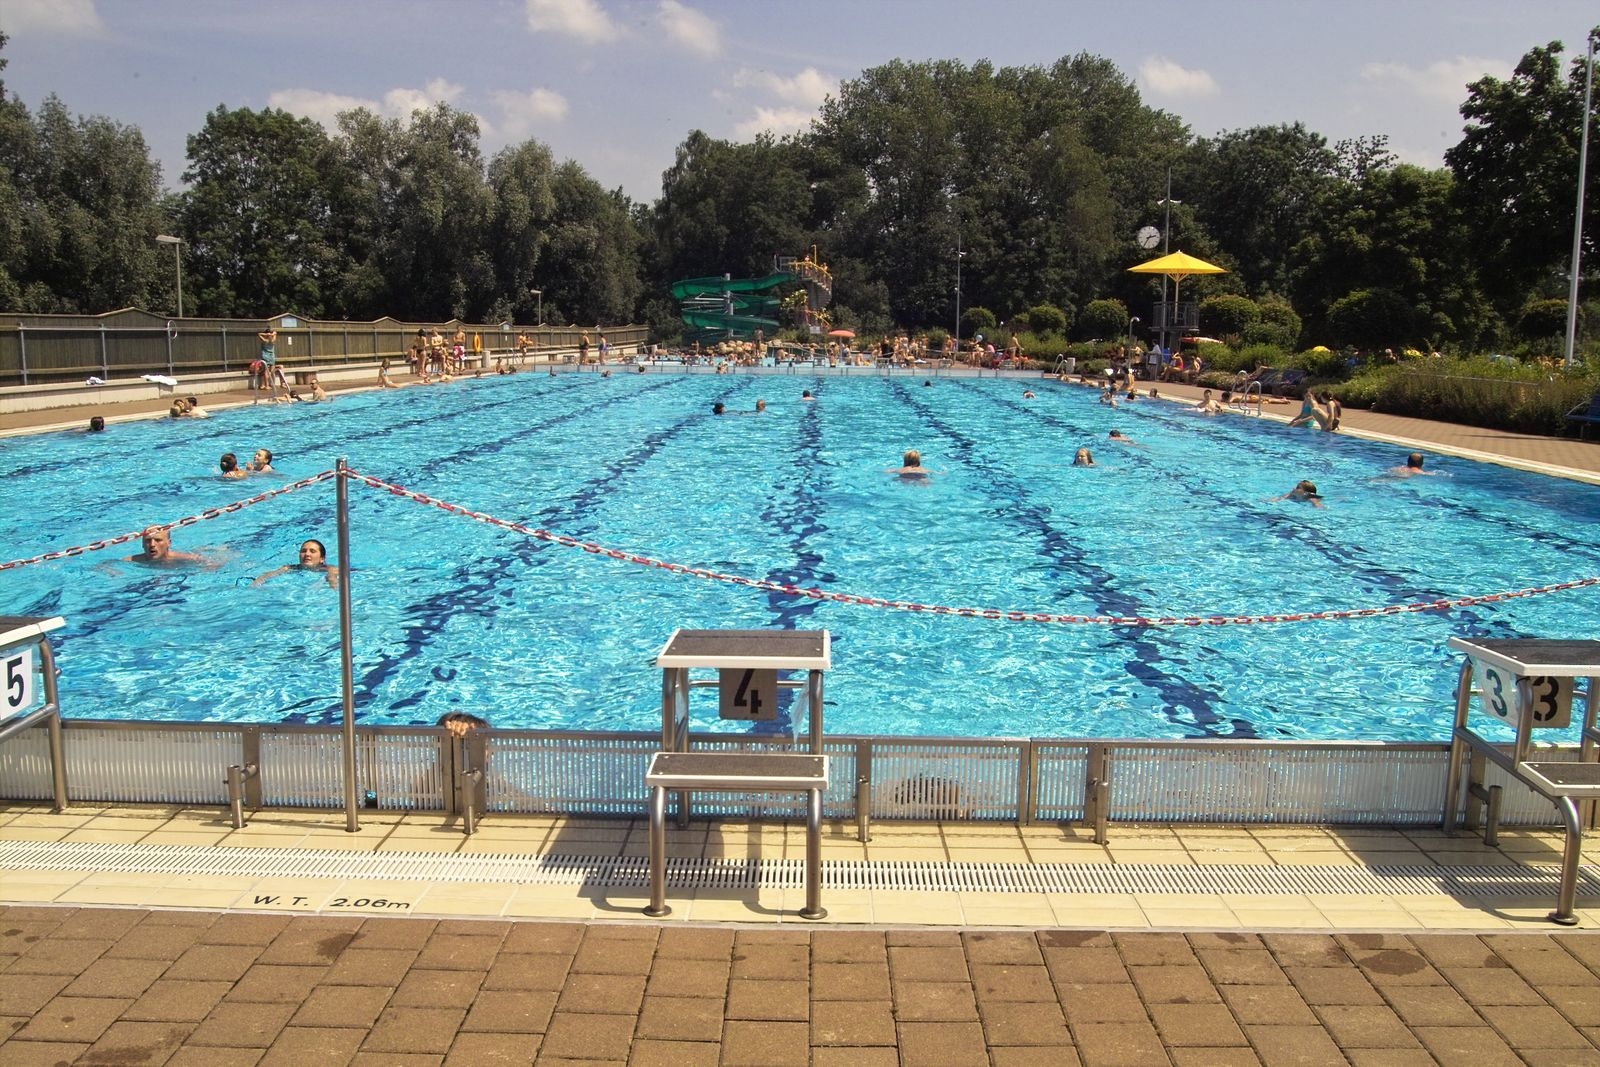 Freibad Singoldwelle (26.06.2020)